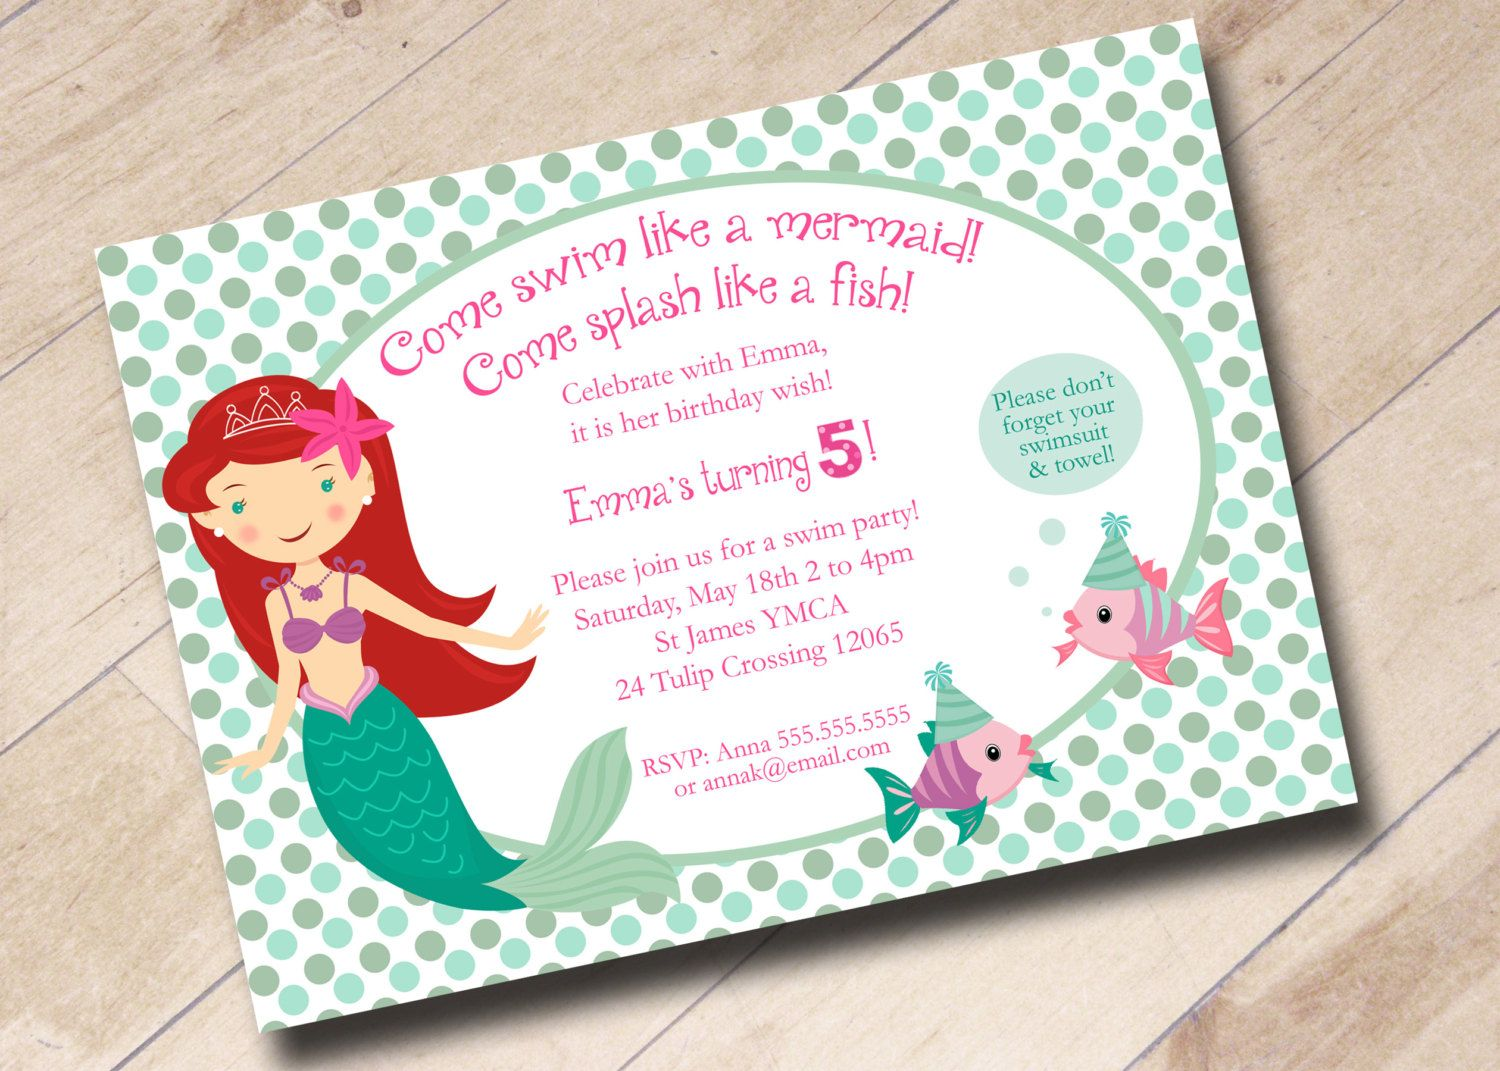 Little Mermaid Swim Party Birthday Invitation By AreUin On Etsy 1500